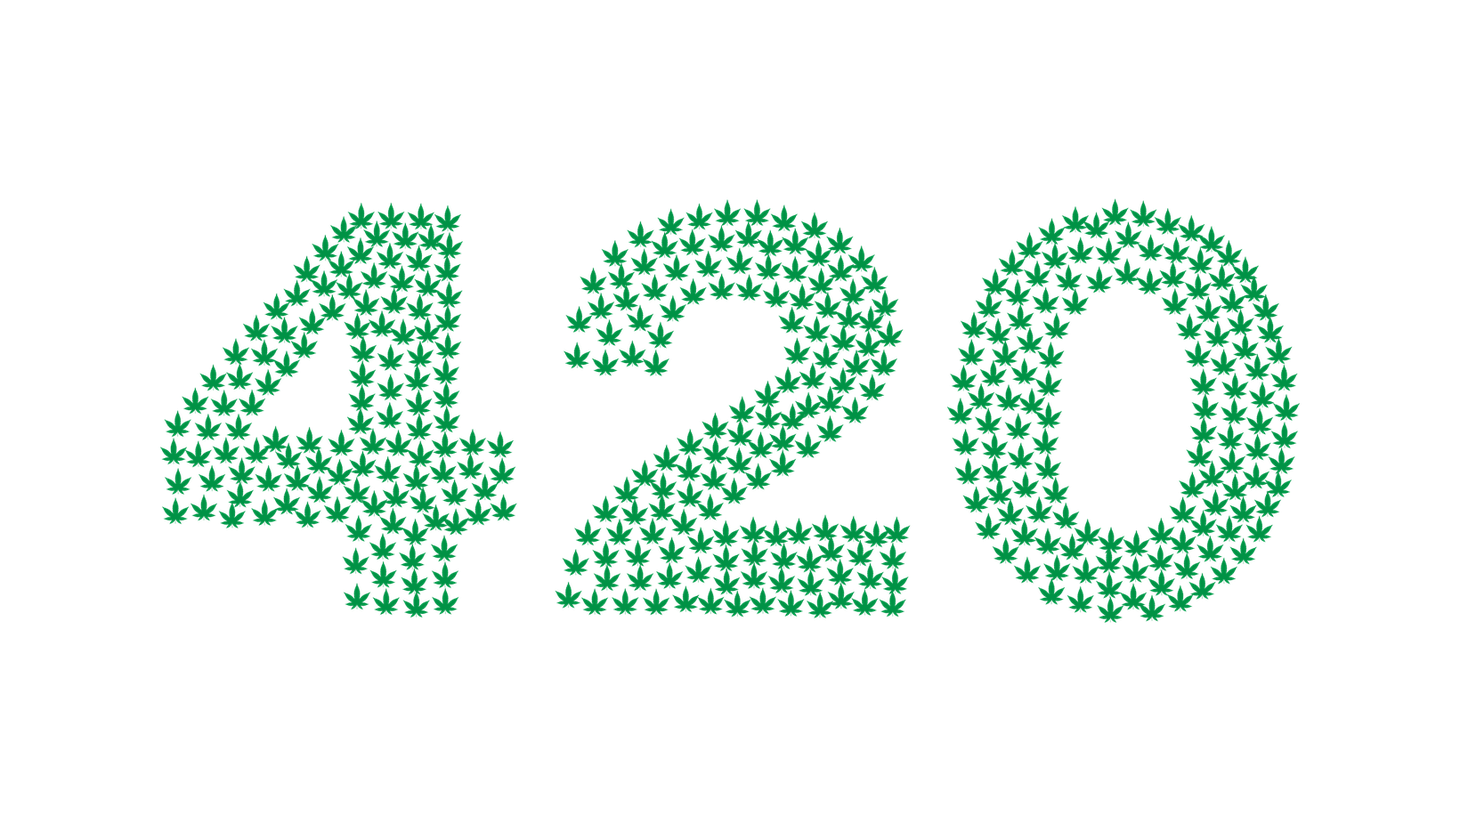 Today is the unofficial holiday for cannabis users worldwide. Since stay-at-home orders are still in place, people are celebrating online.